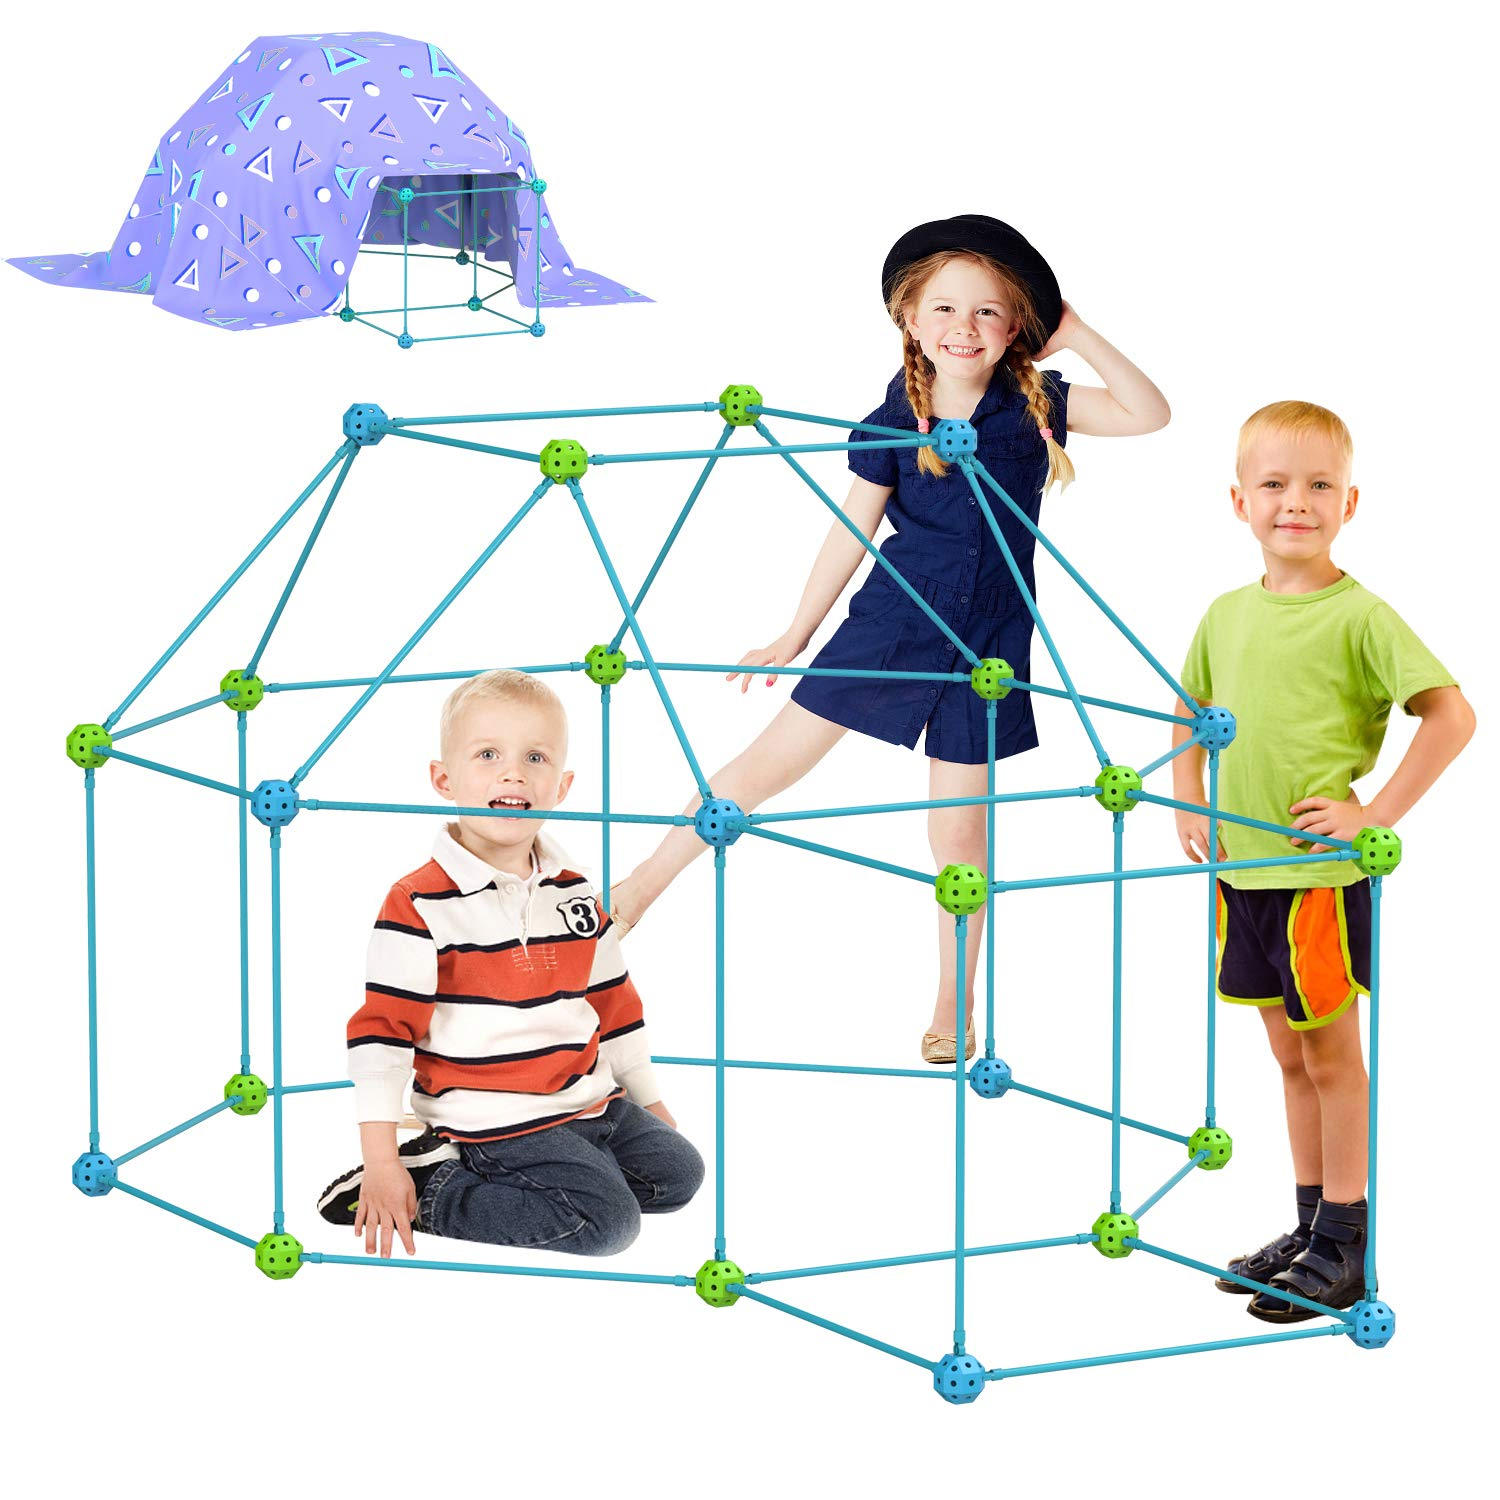 INFUN 120 Pieces Kids Fort Building Kit, Crazy Construction Building Toy for Boys and Girls,STEM Fort Building Set Play Castles Tunnels Play Tent Rocket Tower Outdoor and Indoor